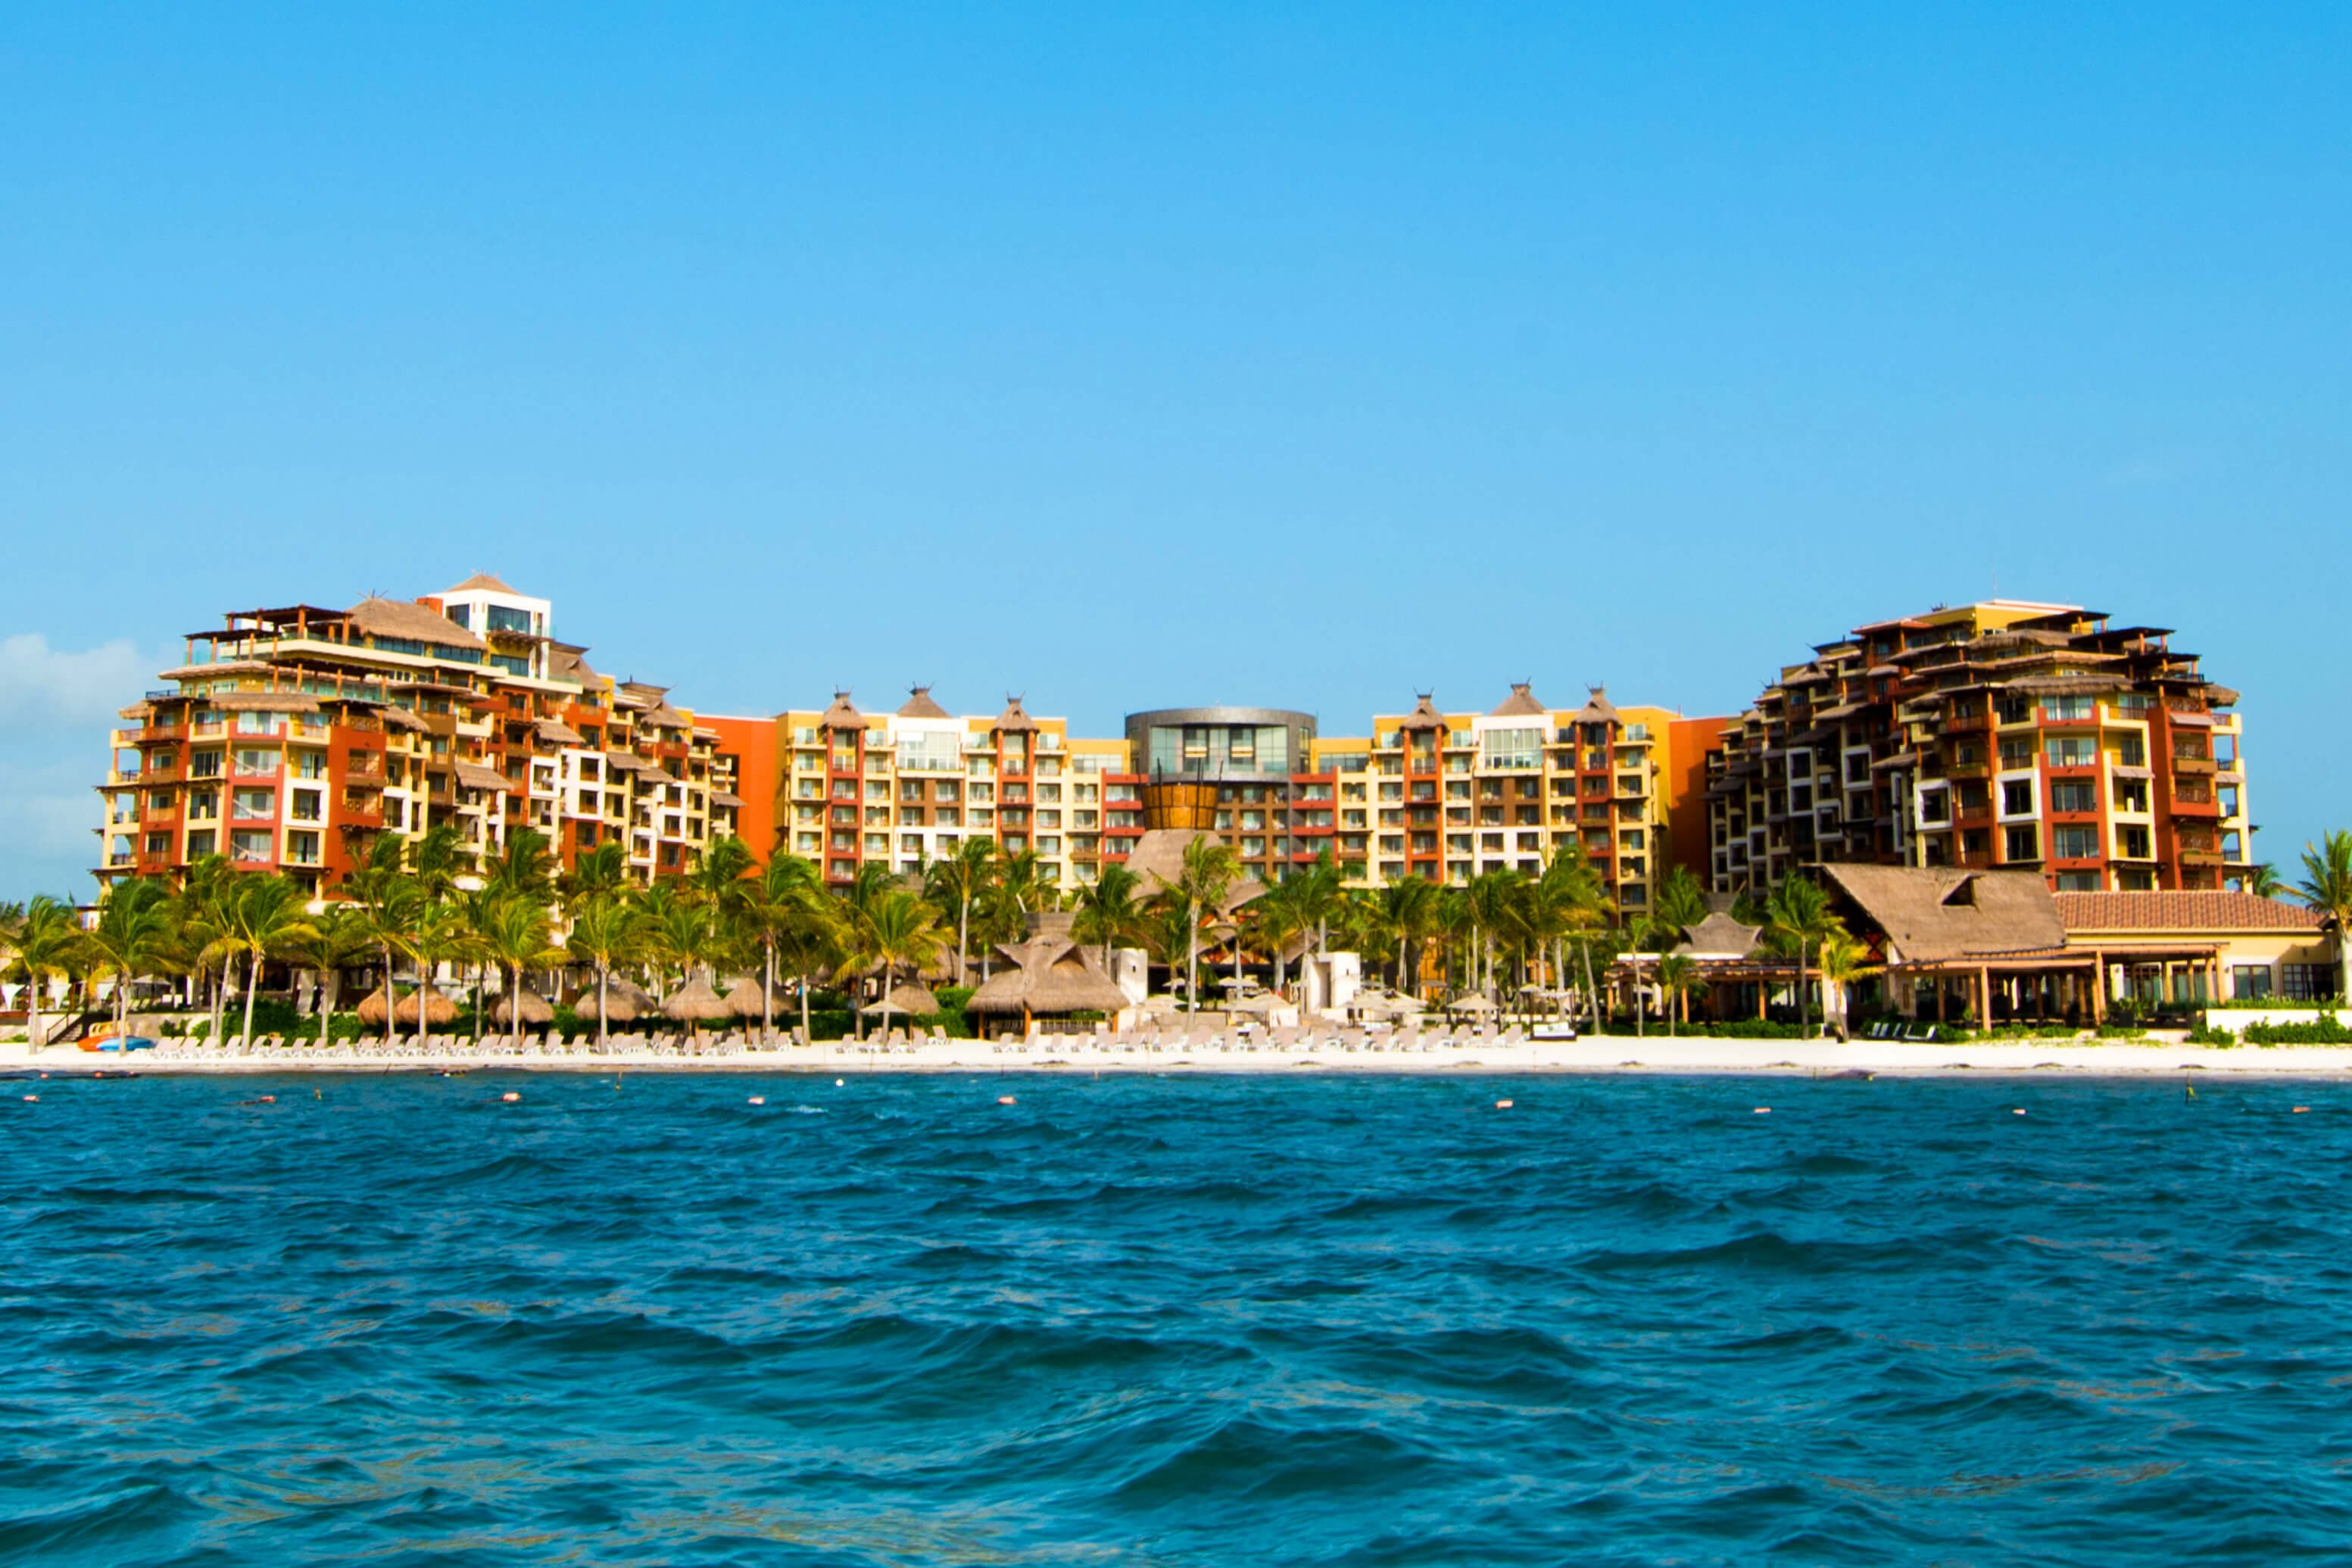 Villa del Palmar Cancun Timeshare for the Coming Year